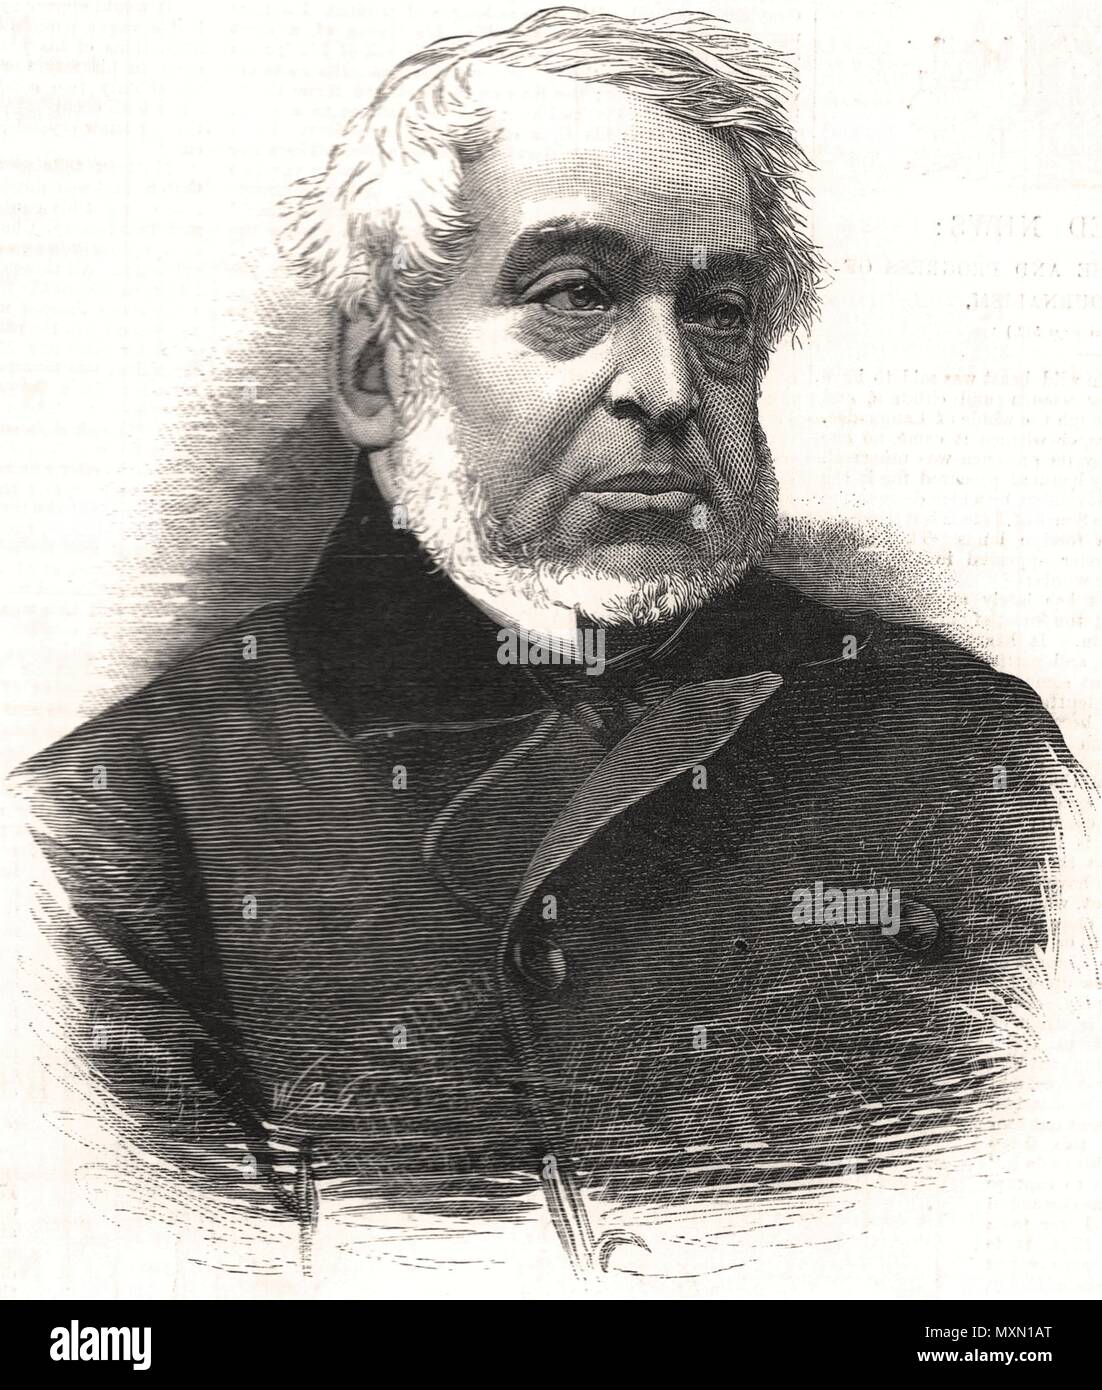 The late Baron Lionel Rothschild. Portraits 1879. The Illustrated London News - Stock Image